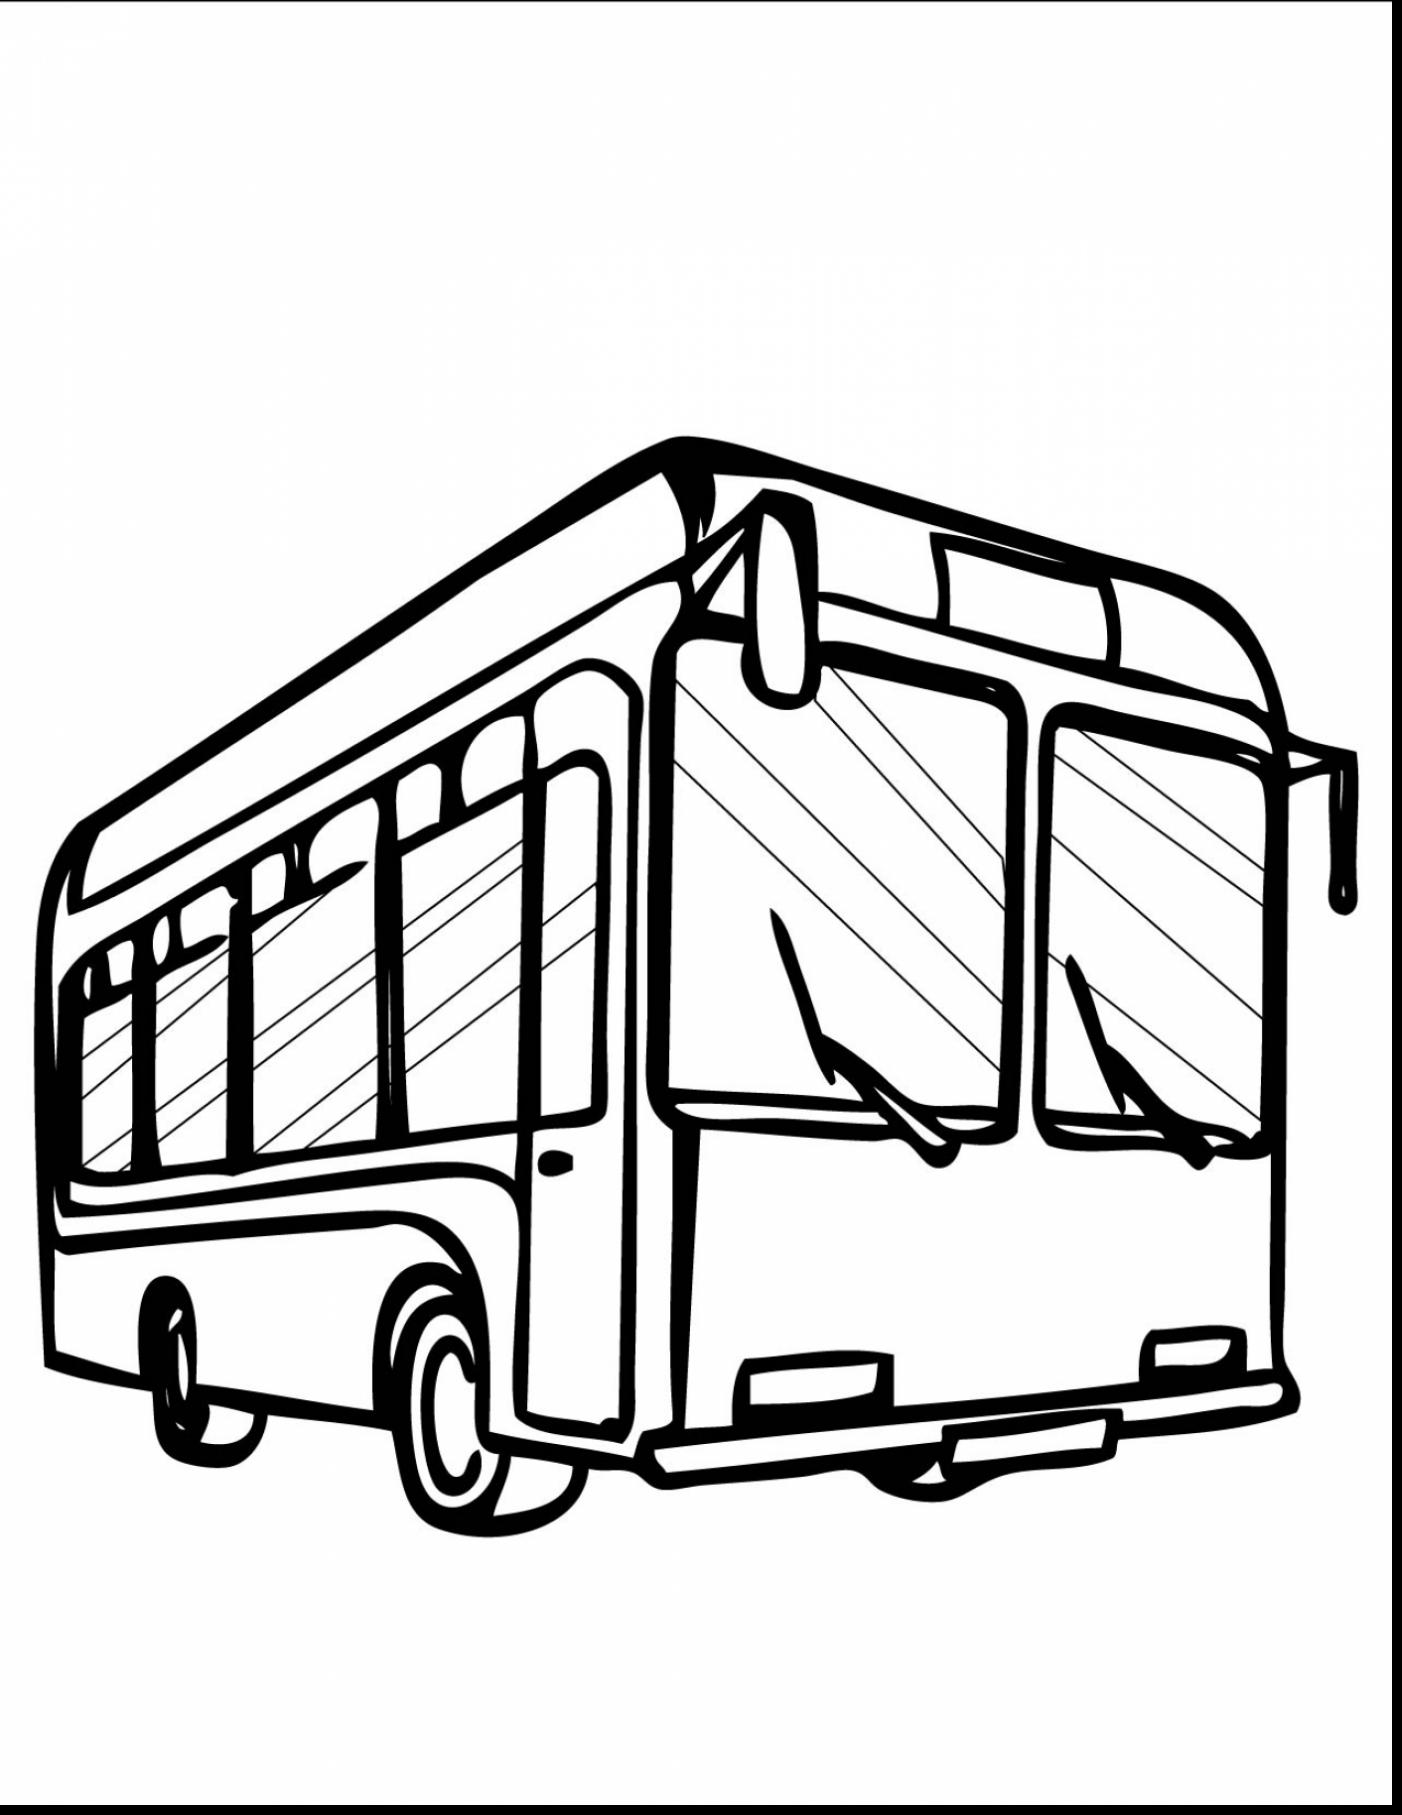 Magic School Bus Coloring Page | Free download best Magic School Bus ...